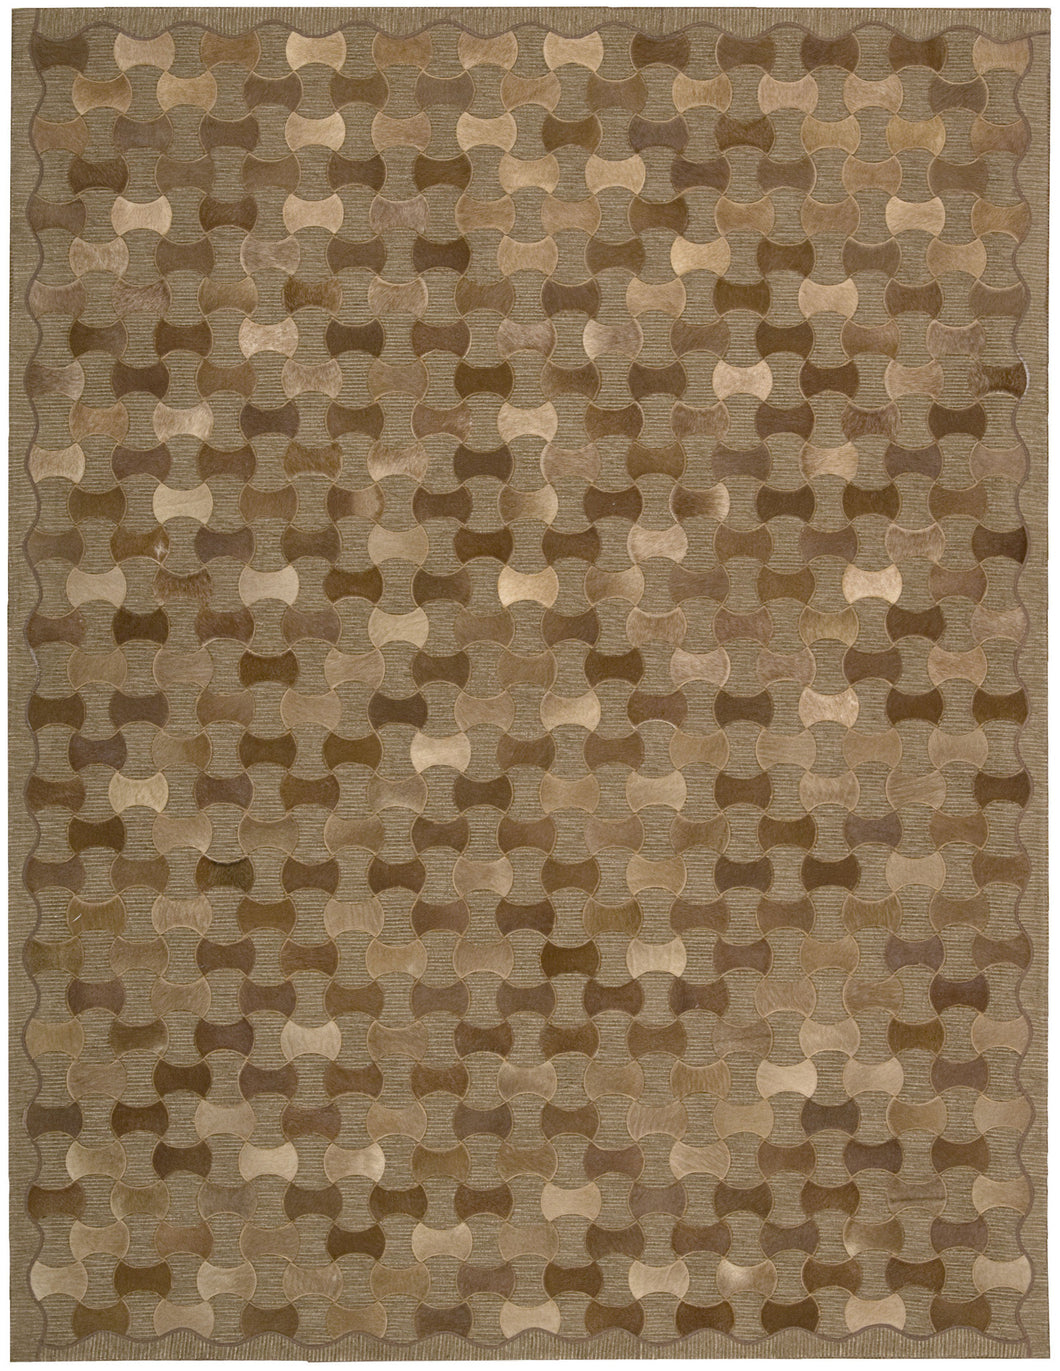 Joseph Abboud Chicago Brown Area Rug By Nourison CHI01 BRN